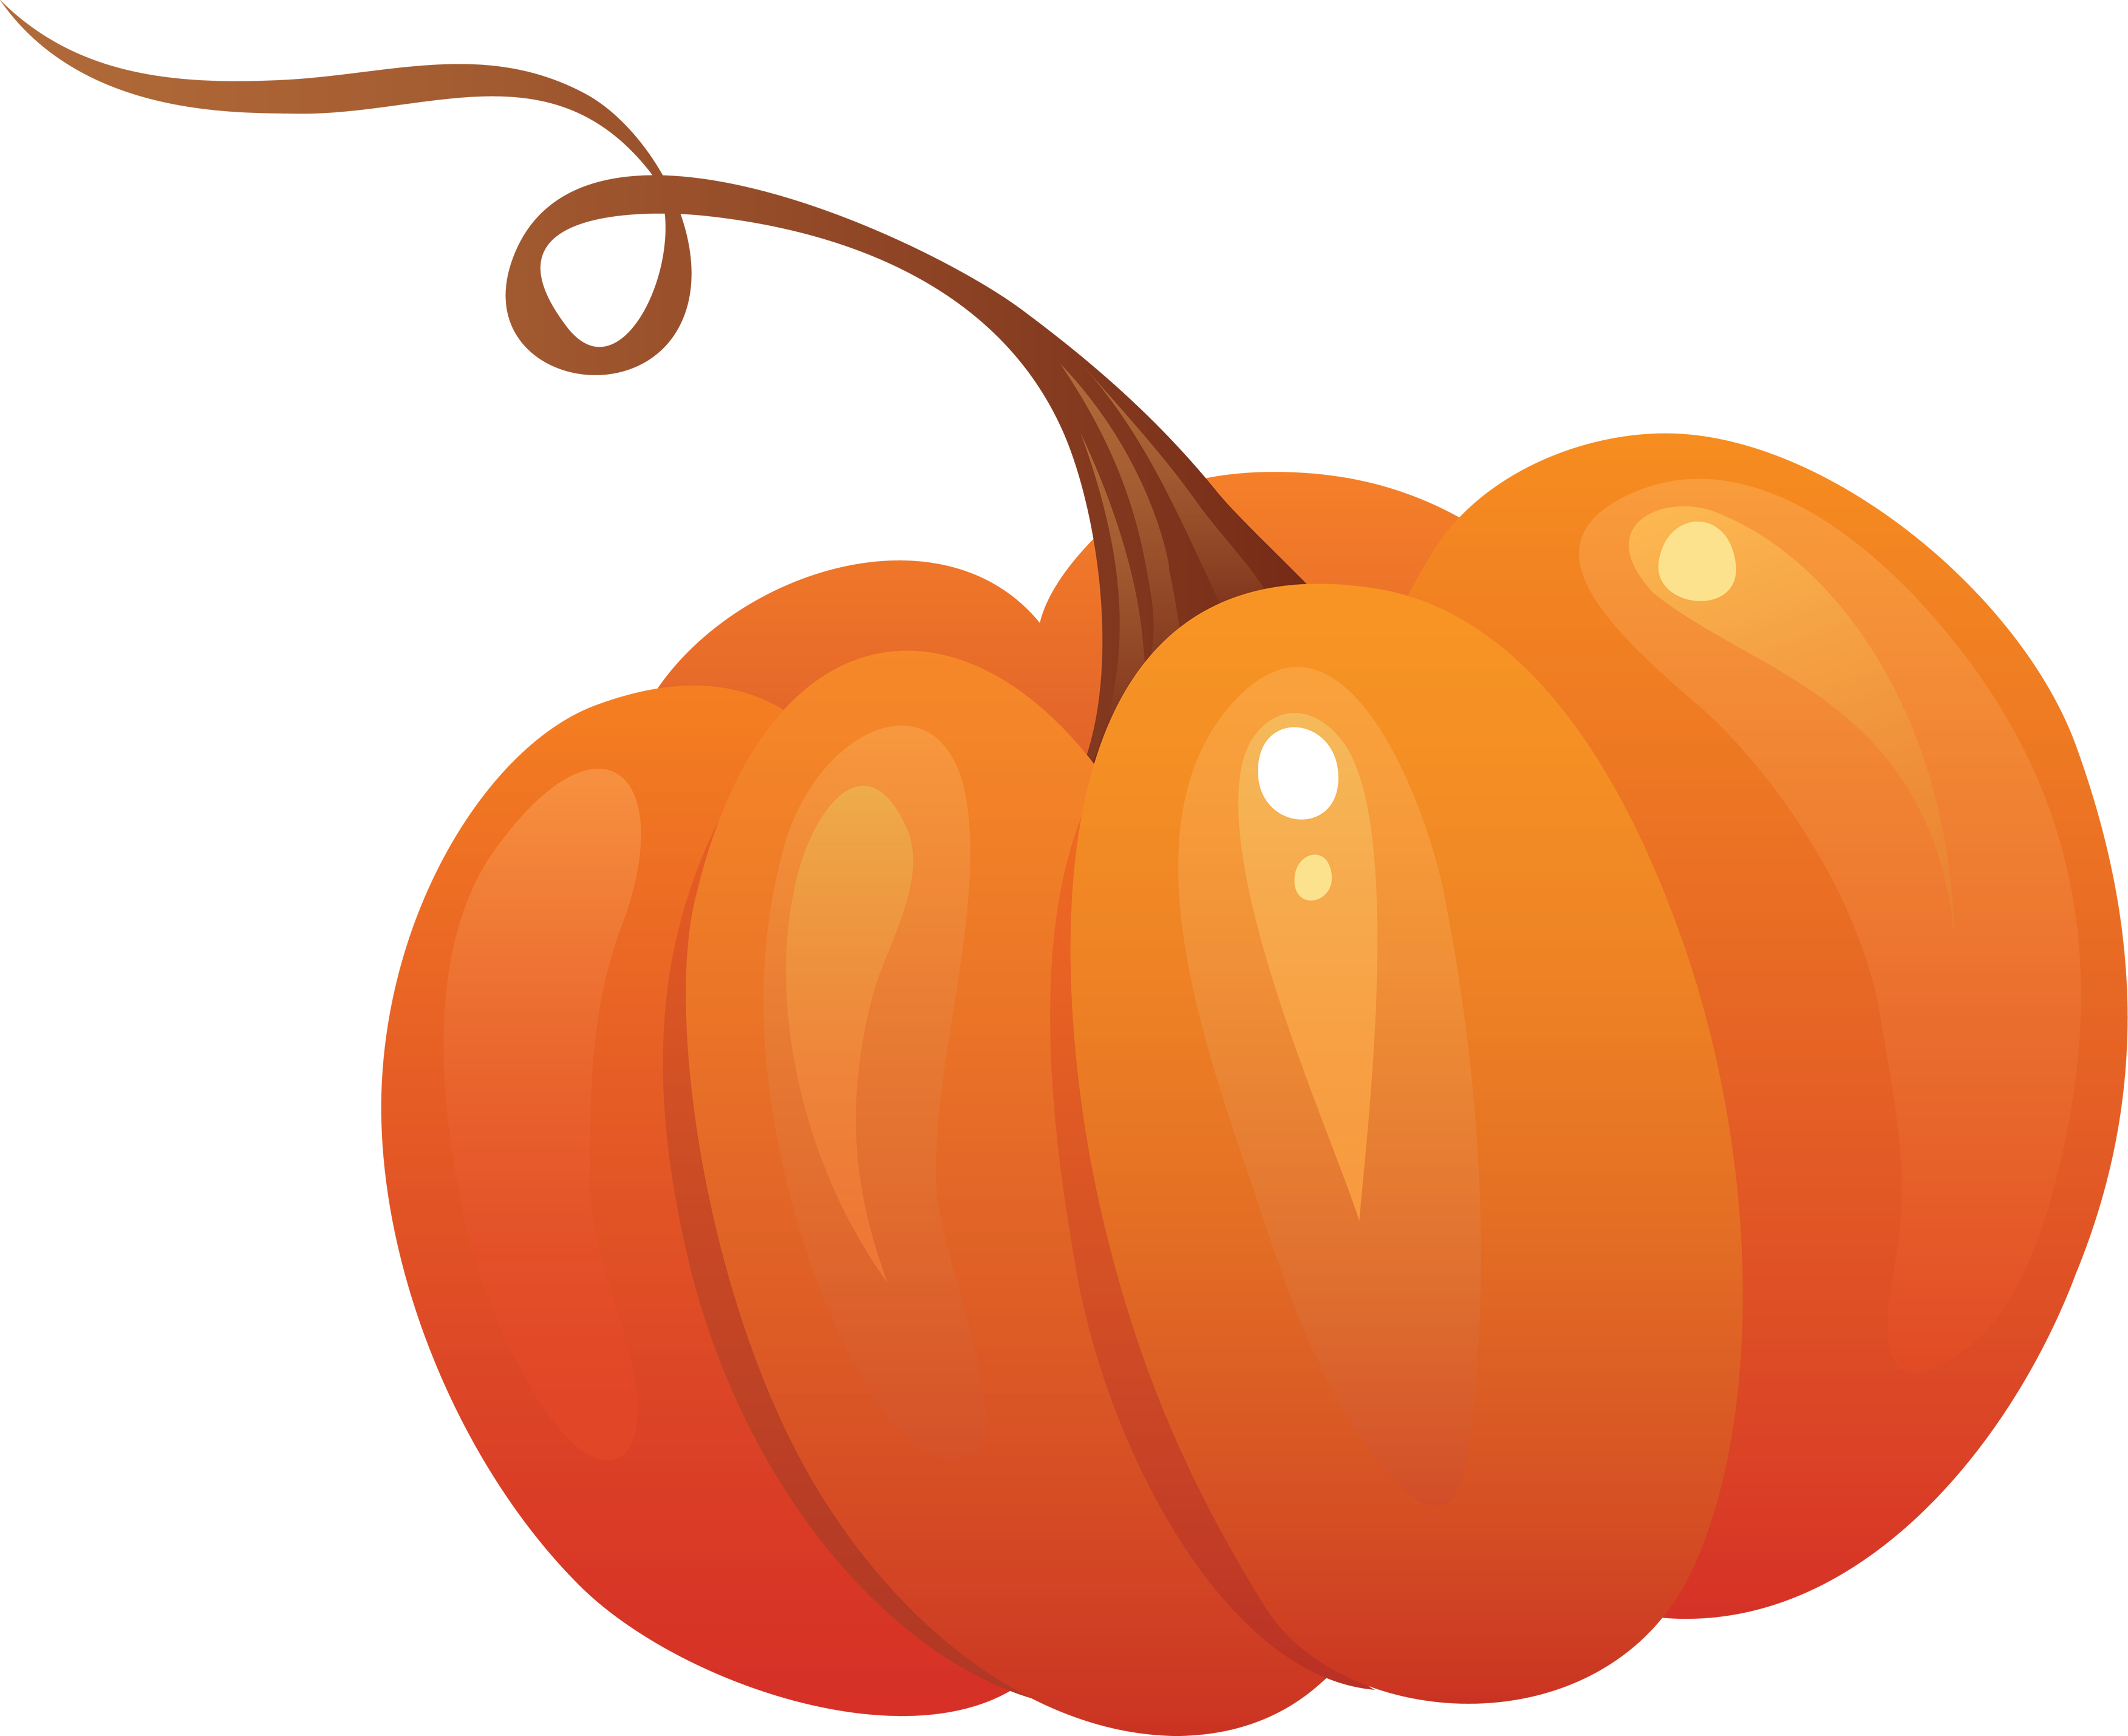 Clipart pumpkin sprout picture library Pumpkin Clipart Transparent Background Free collection | Download ... picture library